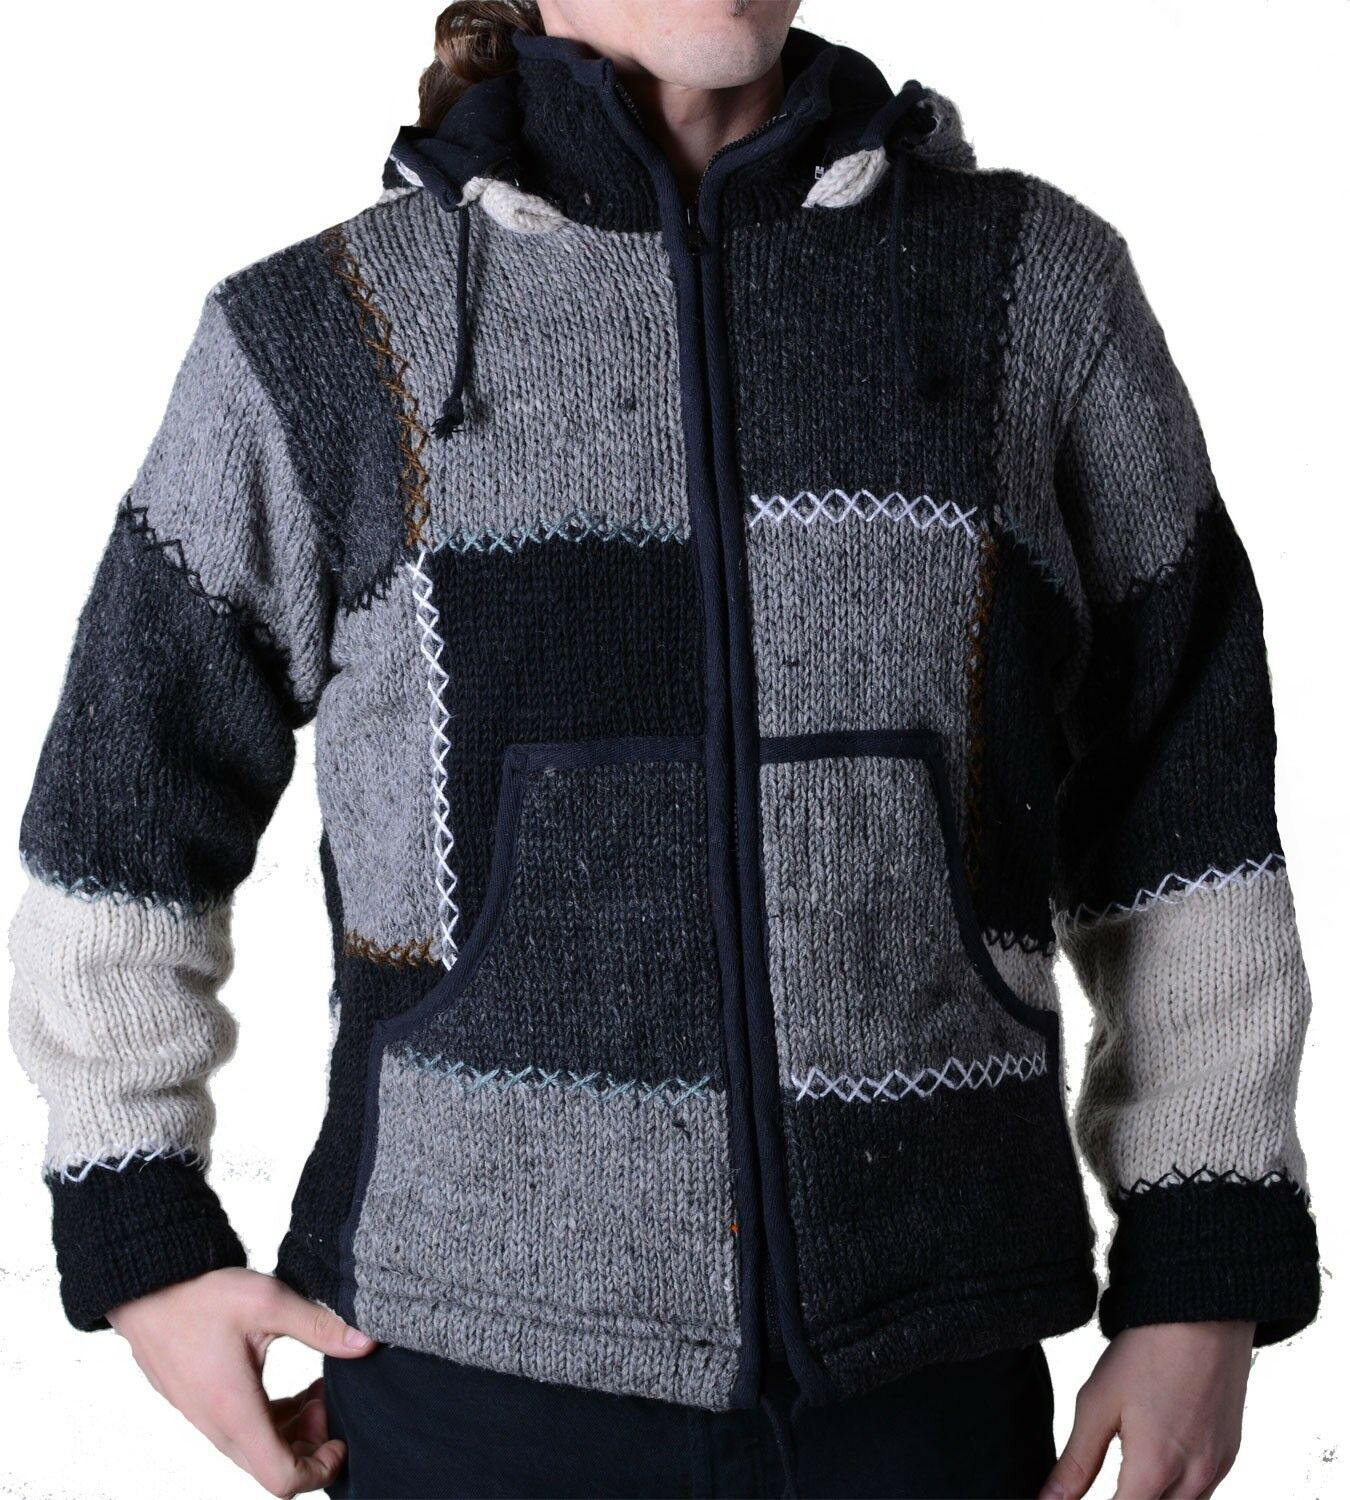 Men's Patchwork Cardigan with Fleece and Removable Hood